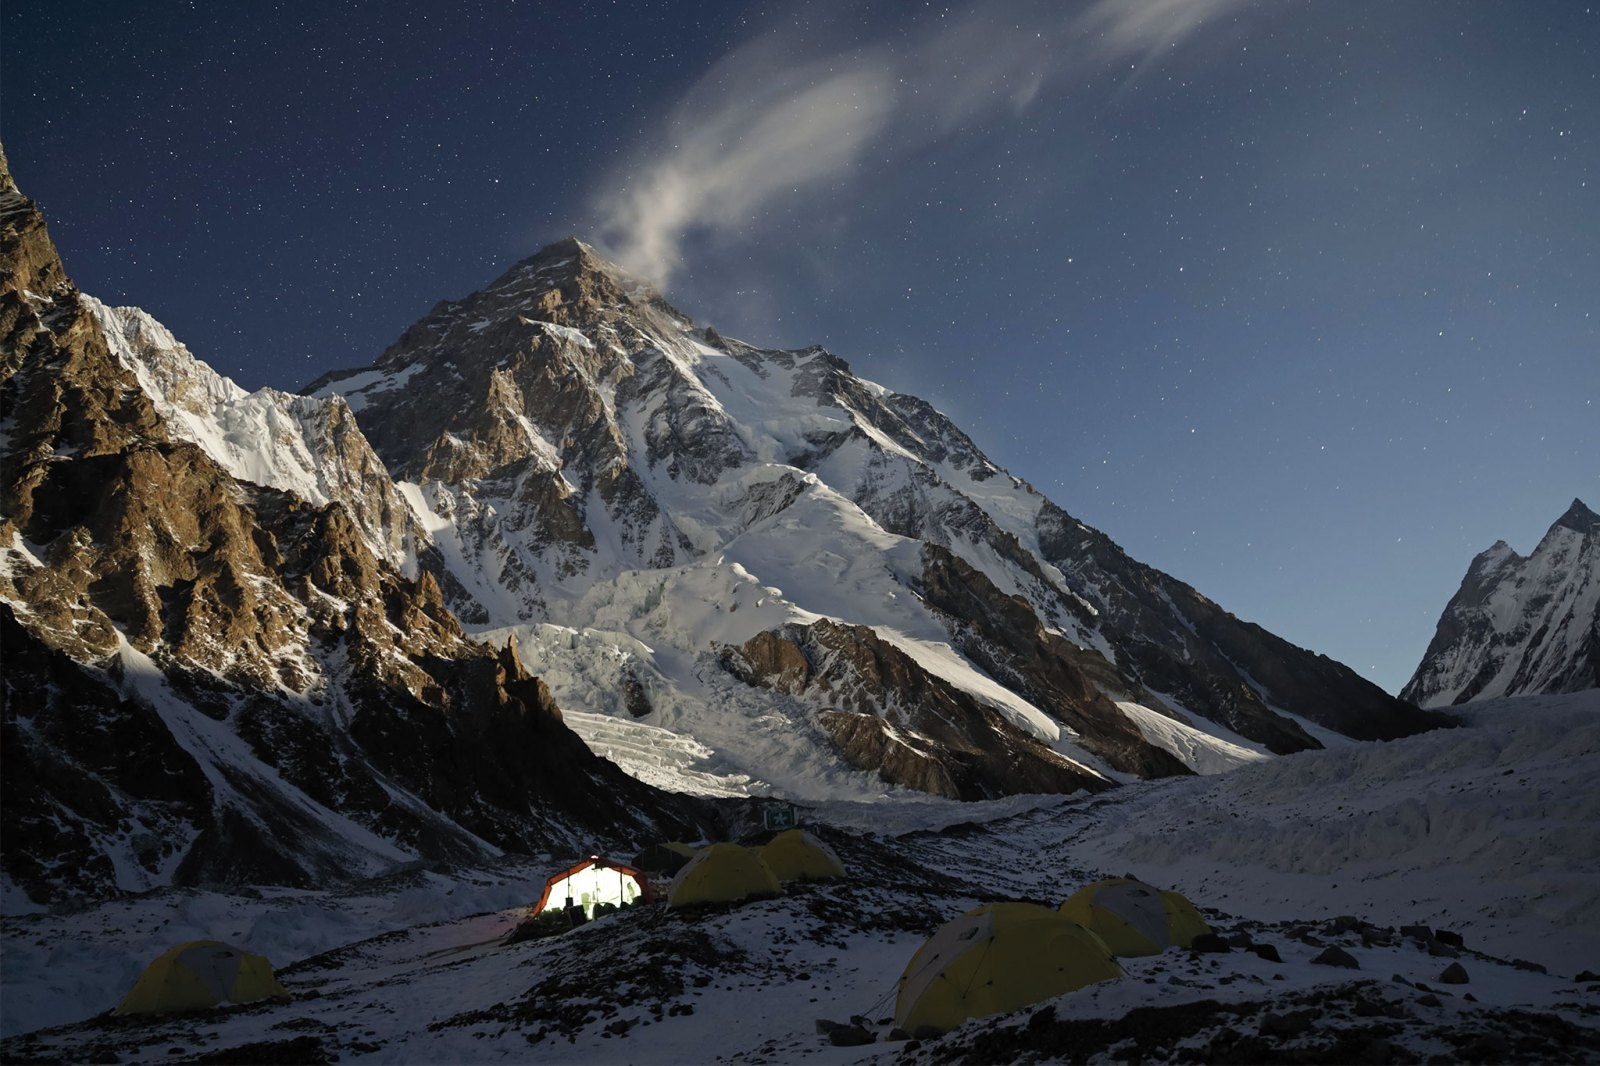 Panoramic view of K2 mountain at nighttime with stars in sky